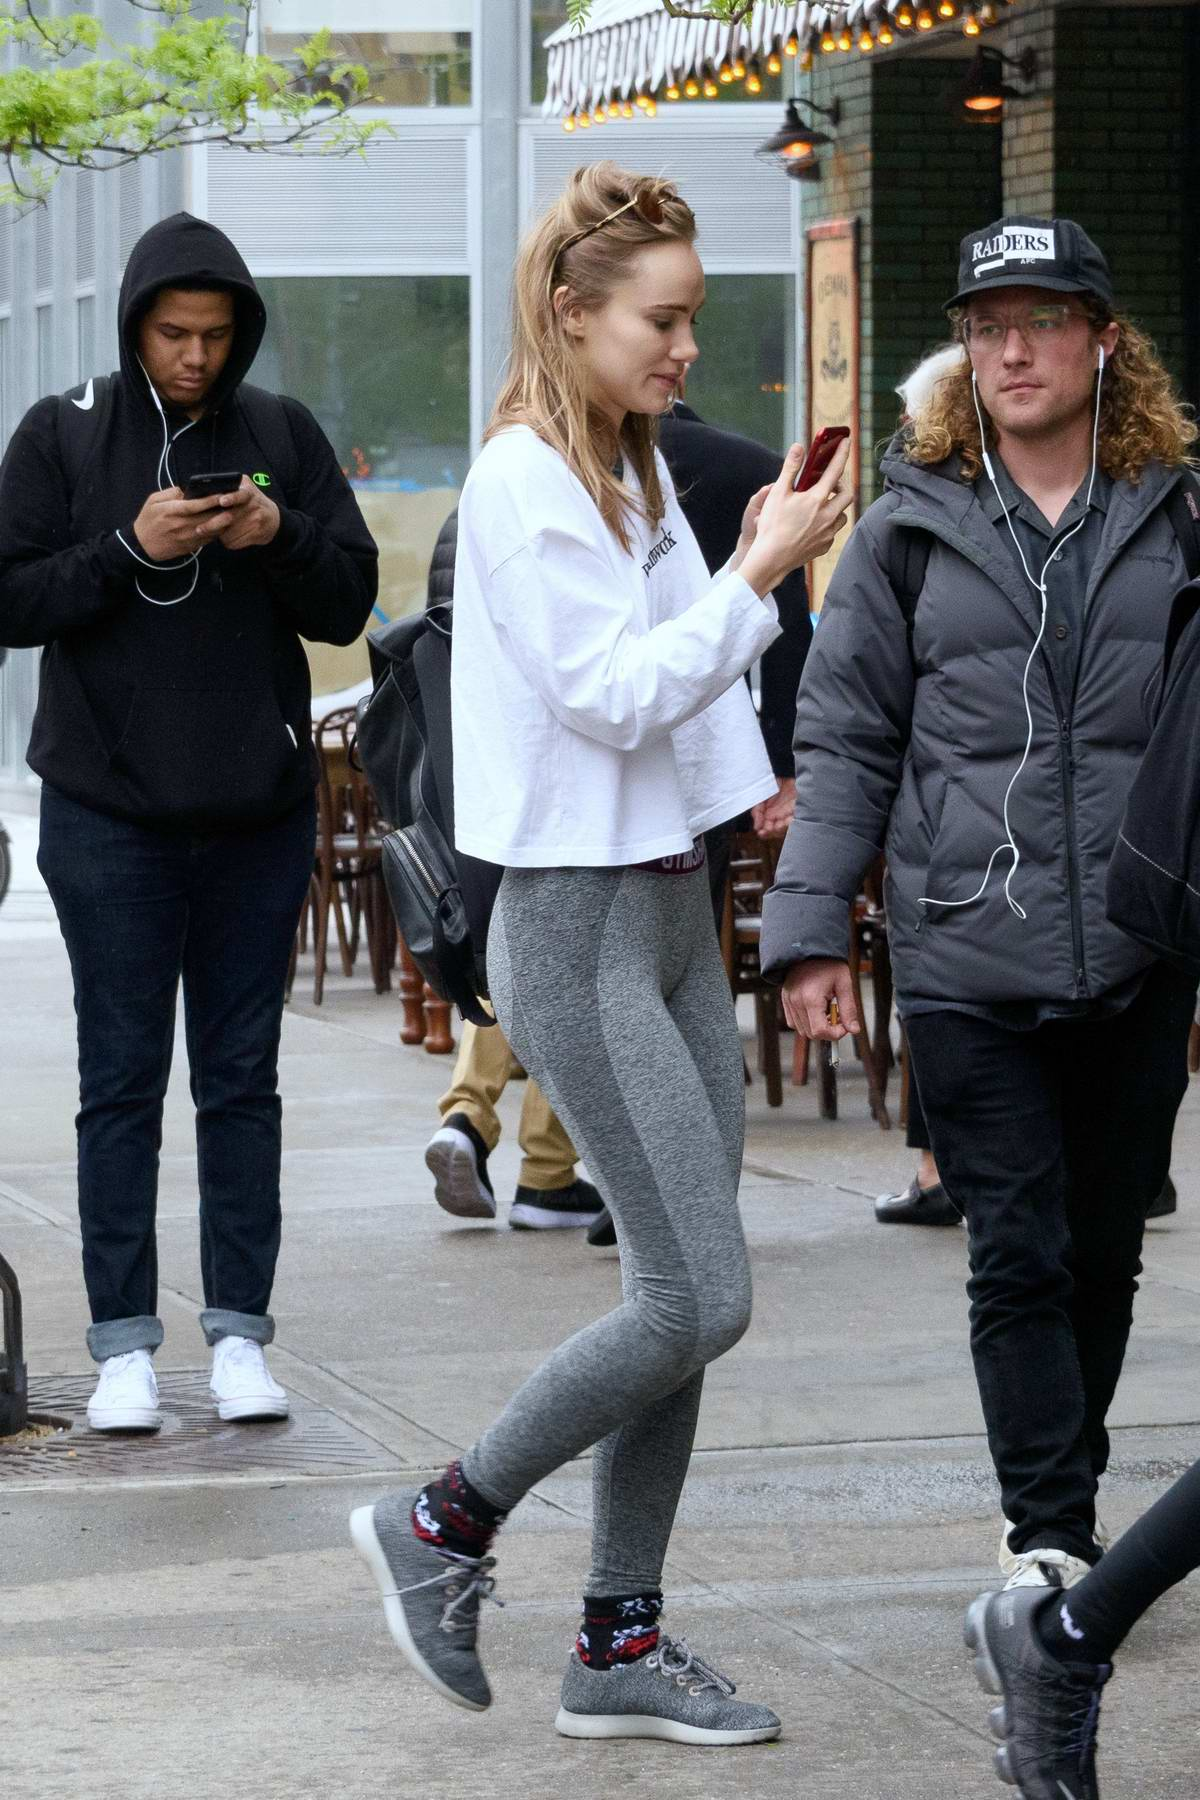 26b82f1b95fb5 suki waterhouse sports white top and grey leggings as she leaves after a workout  session in new york city-030519_7